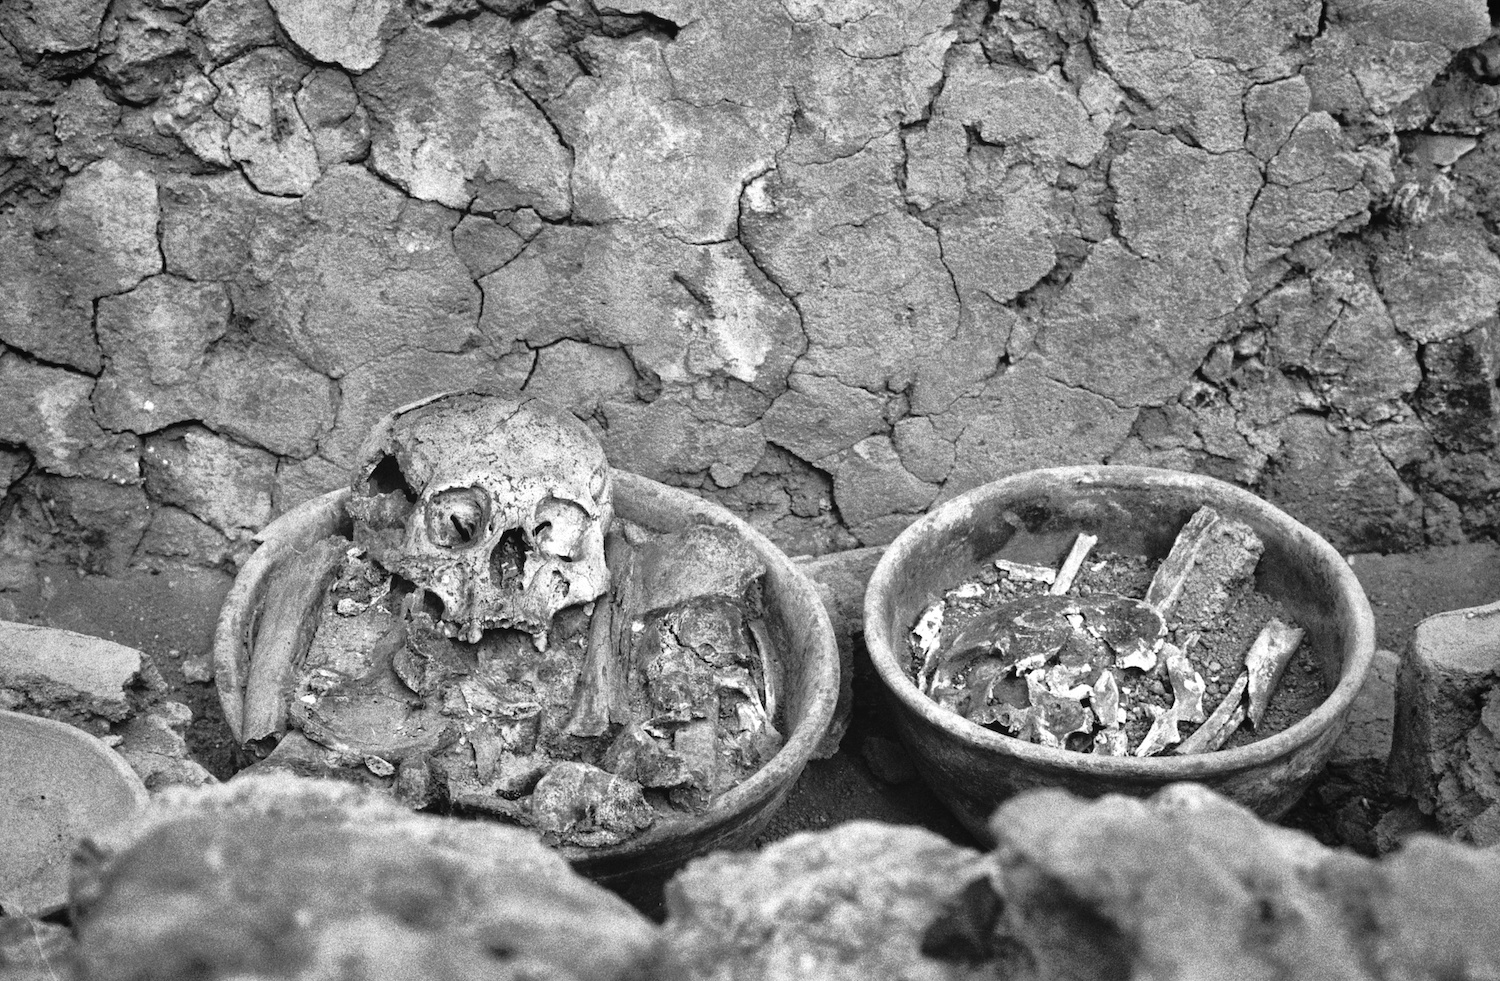 Remains of children deposited in ceramic pots at the Courtyard of Altars in the Great Pyramid of Cholula, Mexico. It's believed these children were messengers to Tlaloc, the Aztec god of rain, fertility and water. Photographed sometime in 1993.